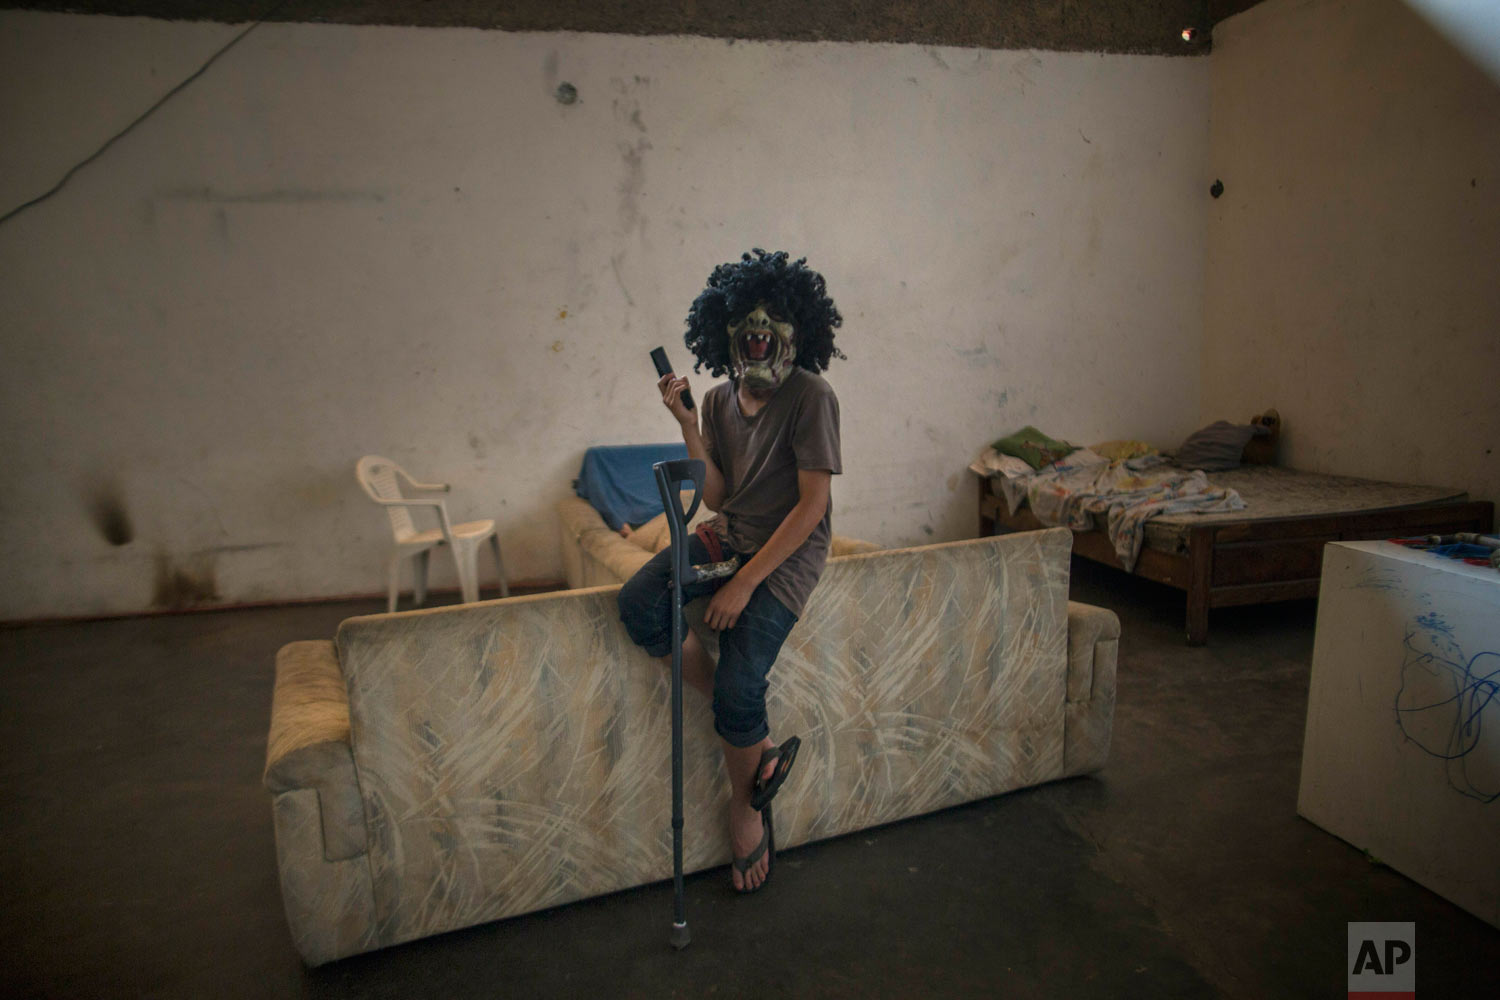 A boy wearing a mask and performing as a gangster with a fake gun, poses for a photo inside a building occupied by squatting families in Caracas, Venezuela, Tuesday, May 7, 2019. (AP Photo/Rodrigo Abd)